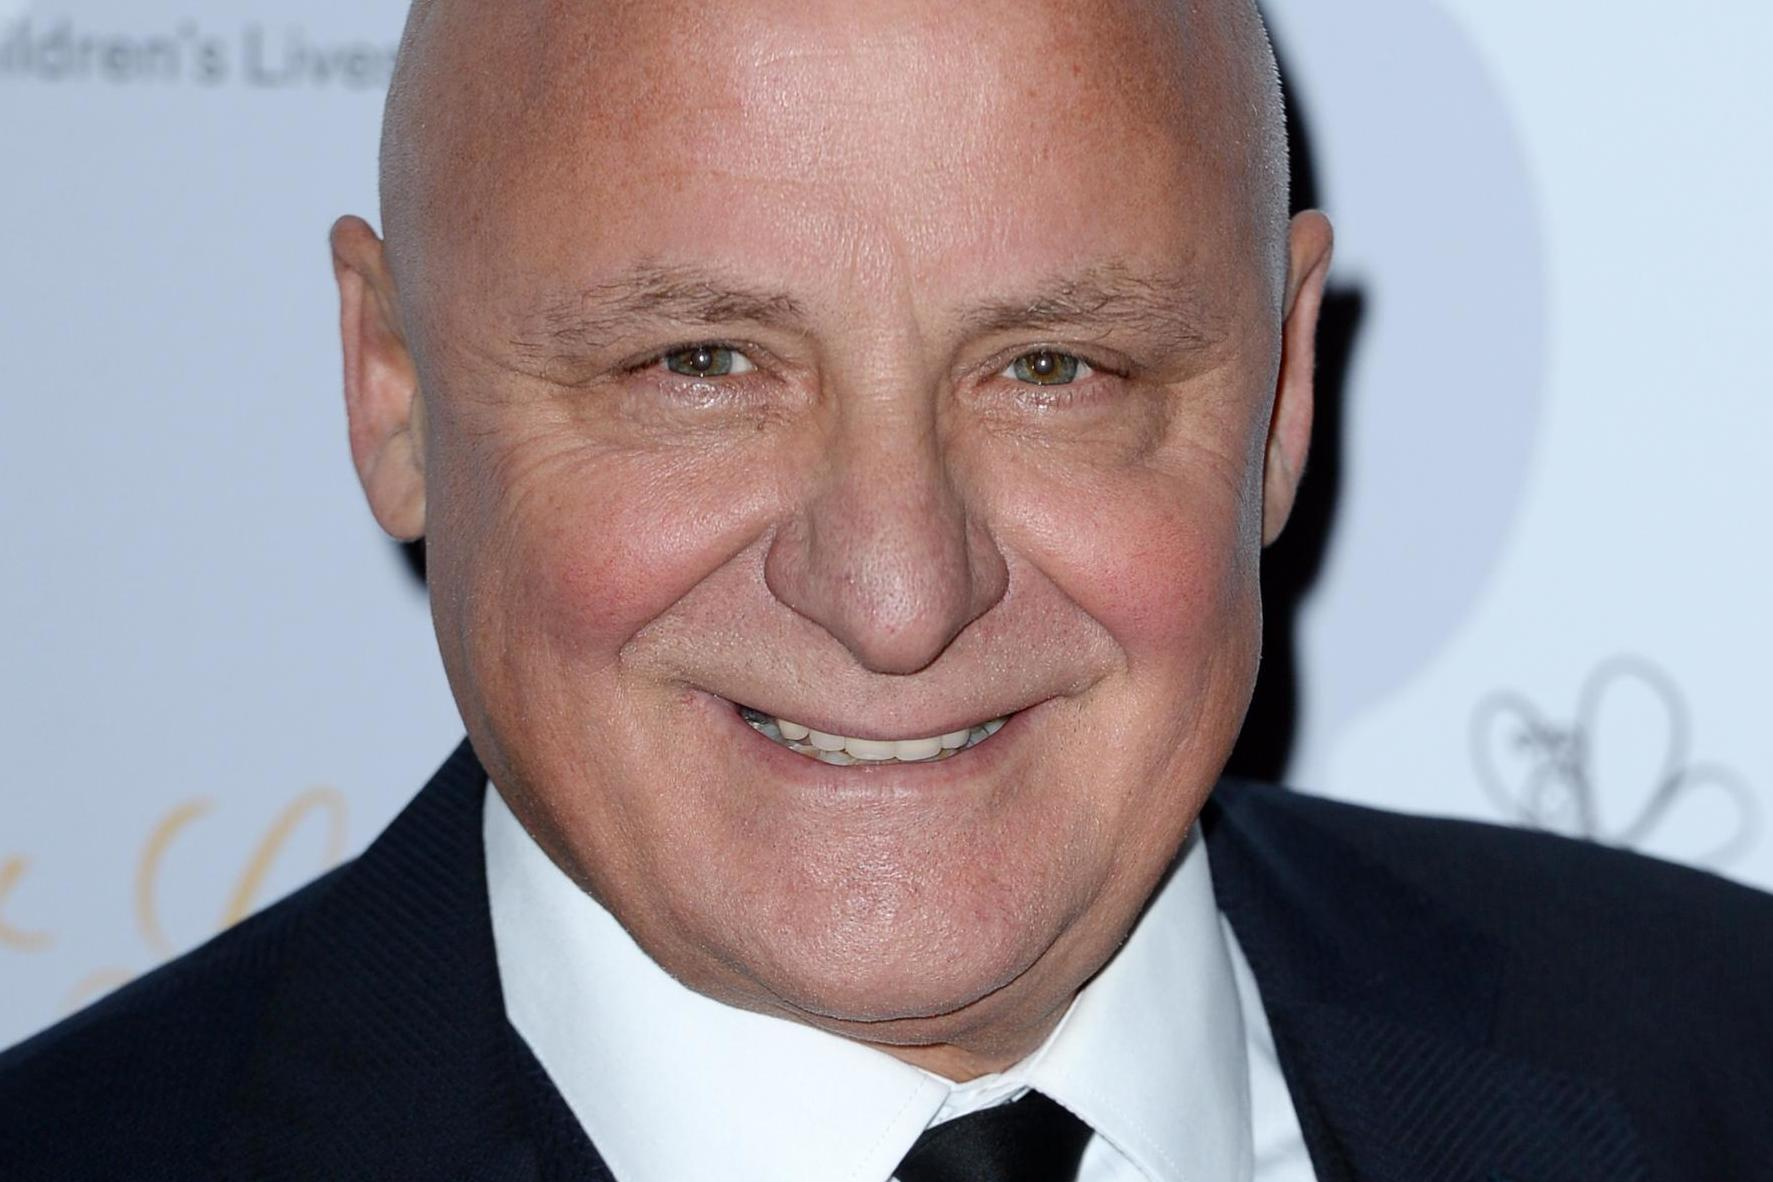 Italian restaurants should only employ Italian cooks, says leading chef Aldo Zilli 1